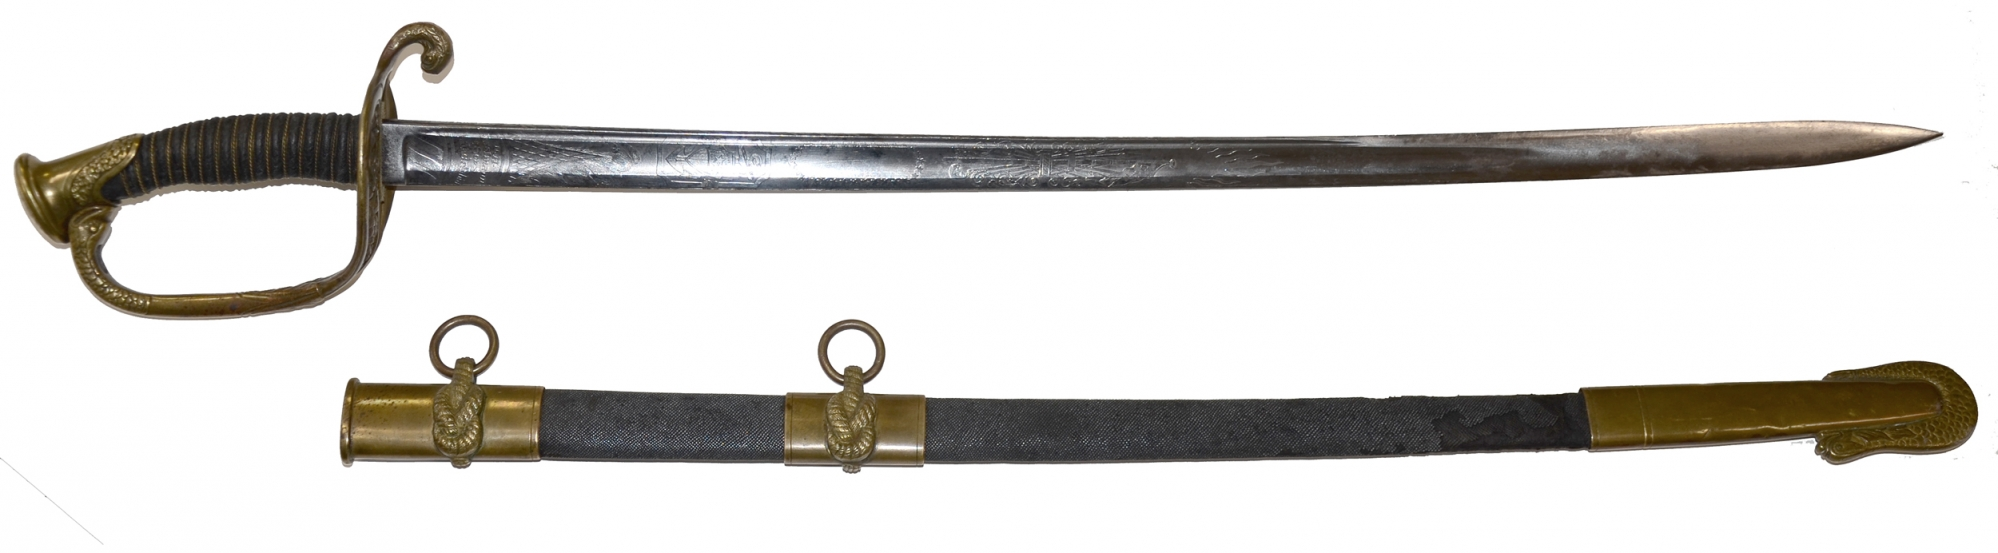 MODEL 1852 U.S. NAVY OFFICER'S SWORD BY HORSTMANN